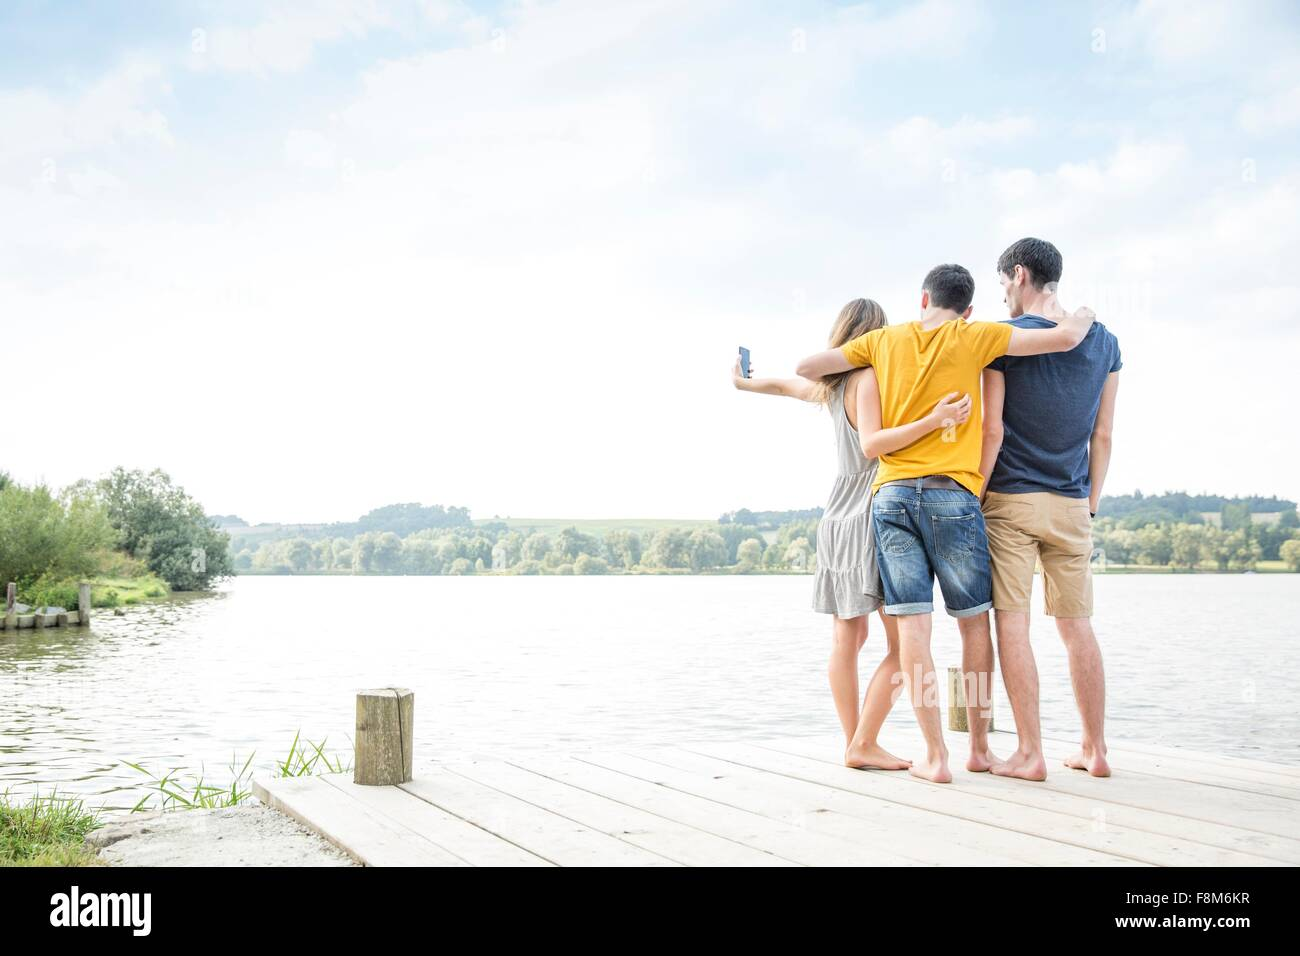 Three young adults standing on jetty, taking self portrait, using smartphone, rear view - Stock Image